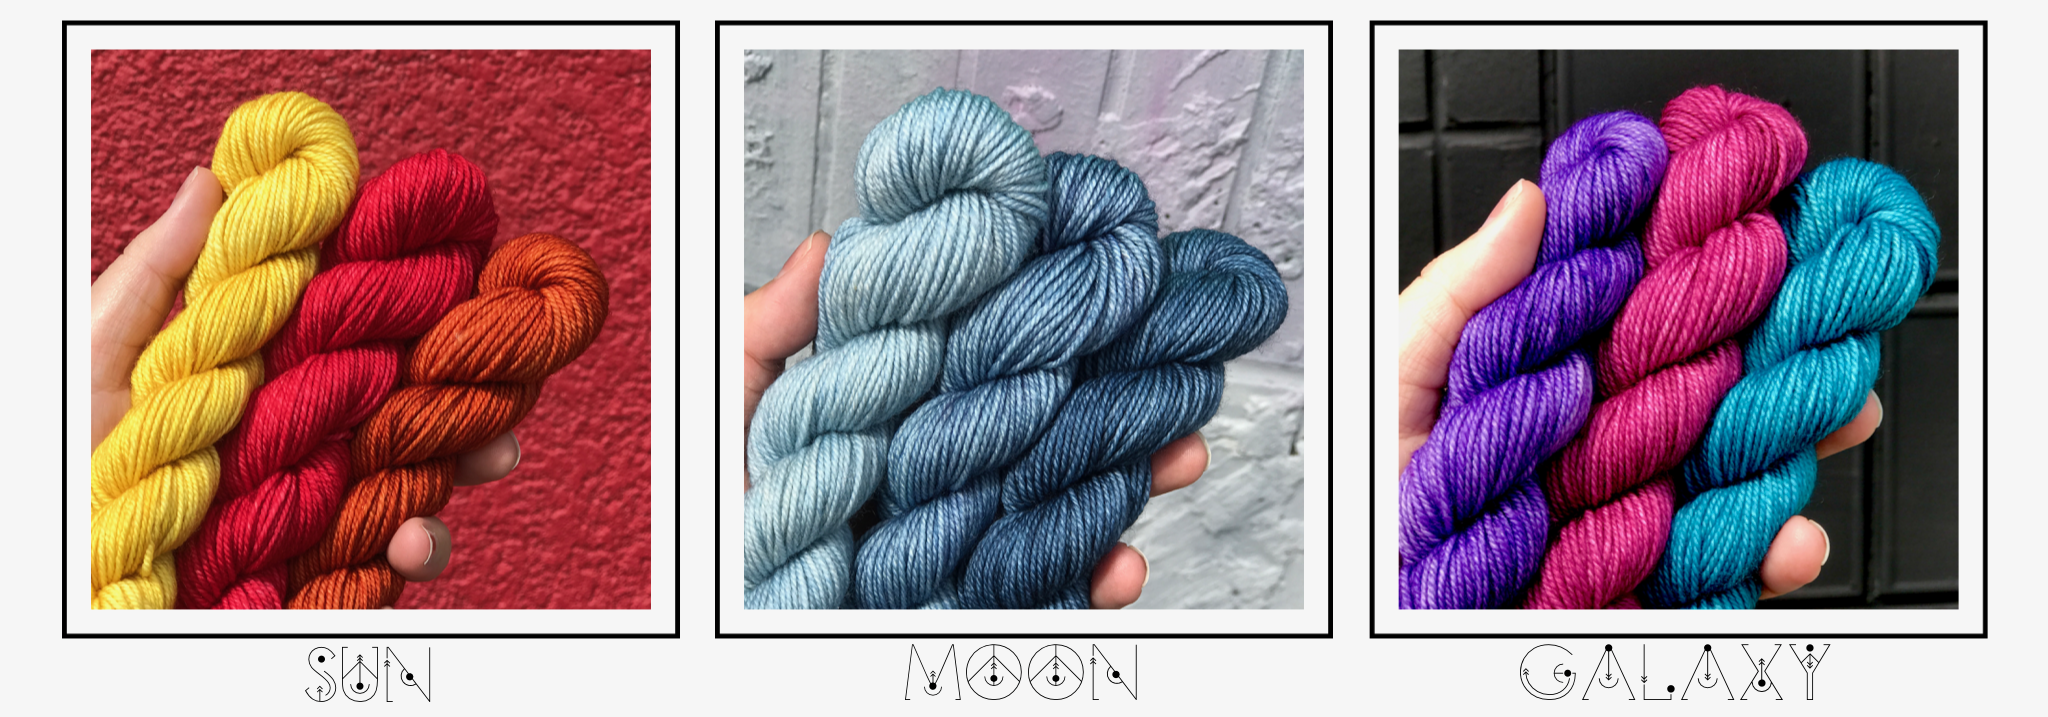 LYS Day 2019 color combos.JPG